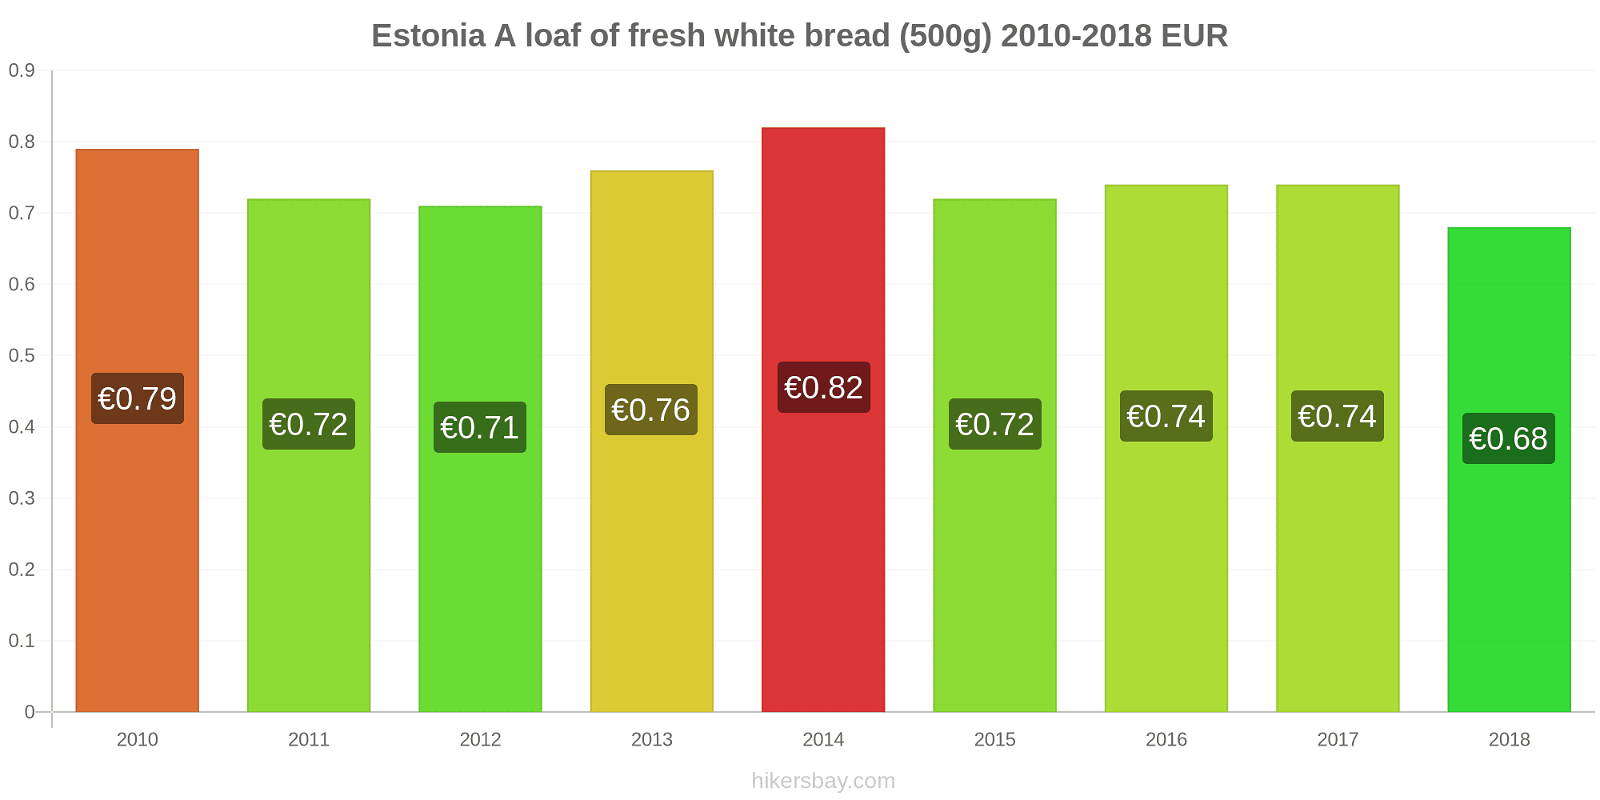 Estonia price changes A loaf of fresh white bread (500g) hikersbay.com